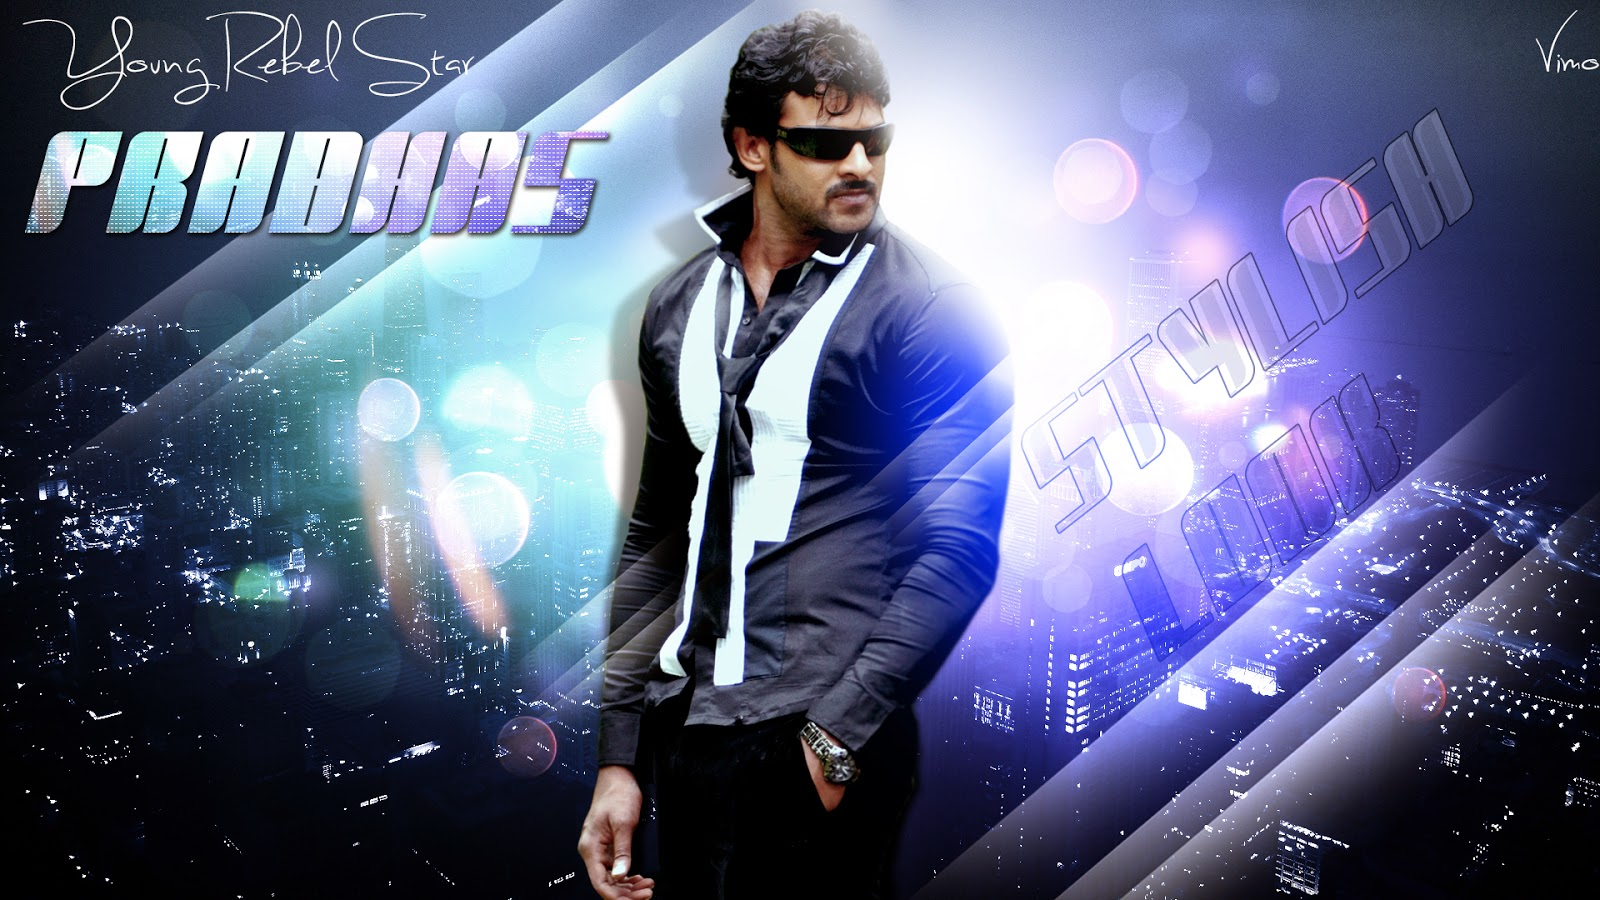 Prabhas Rebel New Stills Wallpapers Ultra Hd 2000: Latest Wallpapers - HD Images 1080p